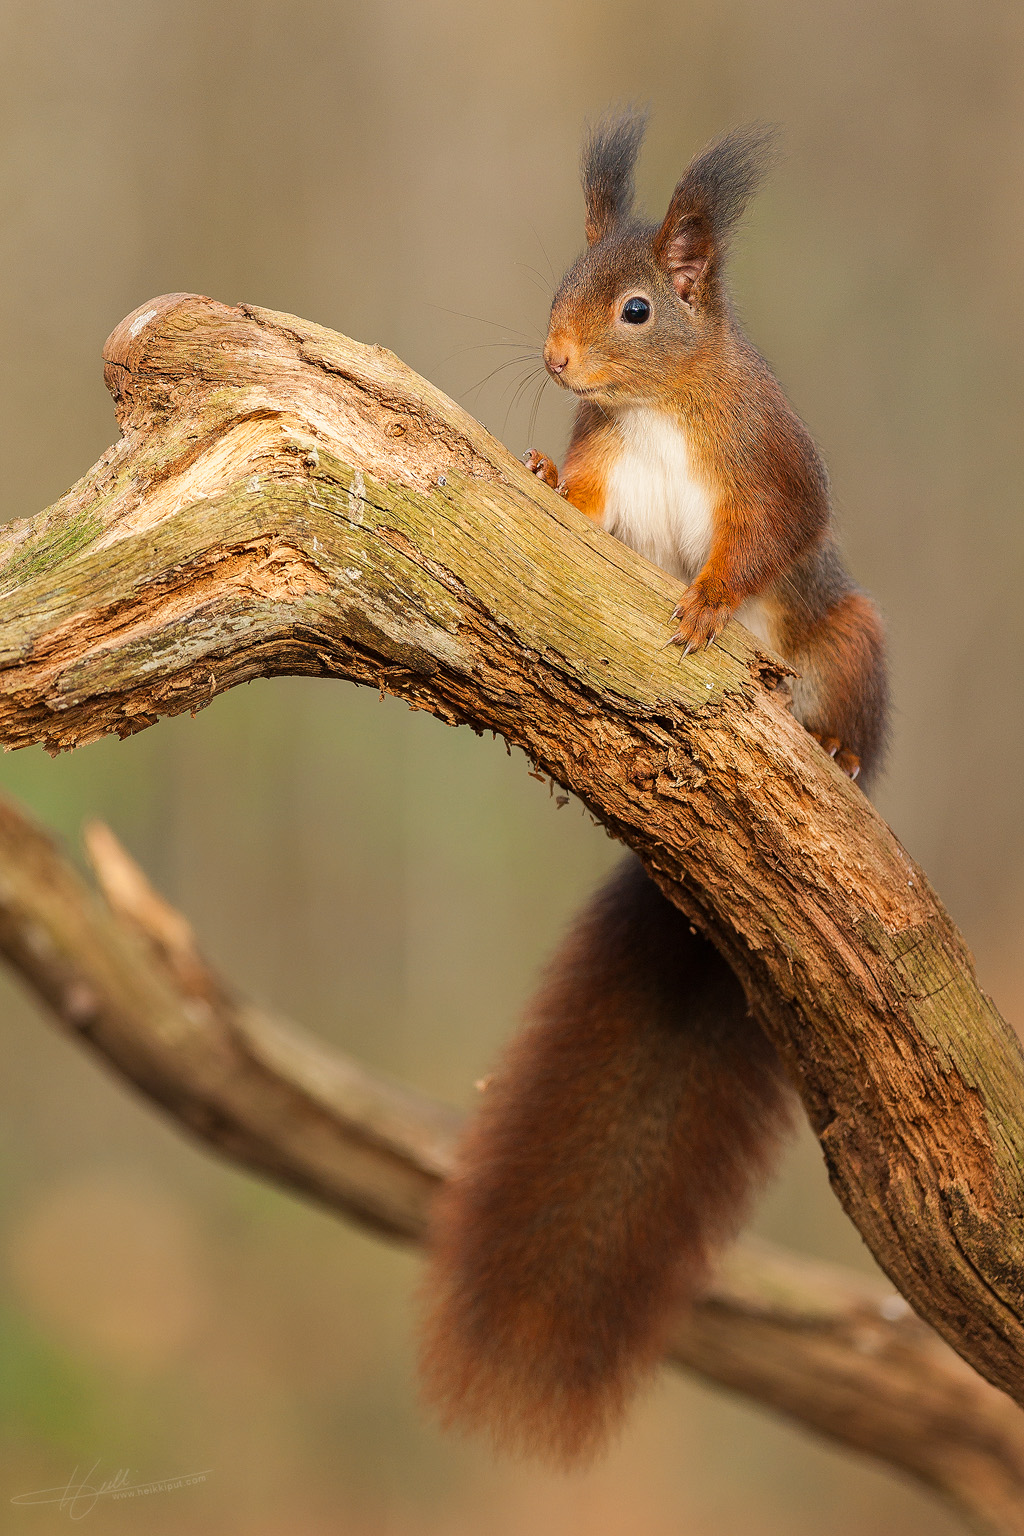 Portrait of a Red squirrel  (Sciurus vulgaris)  on HeikkiPut.com - Nature & Wildlife Photography